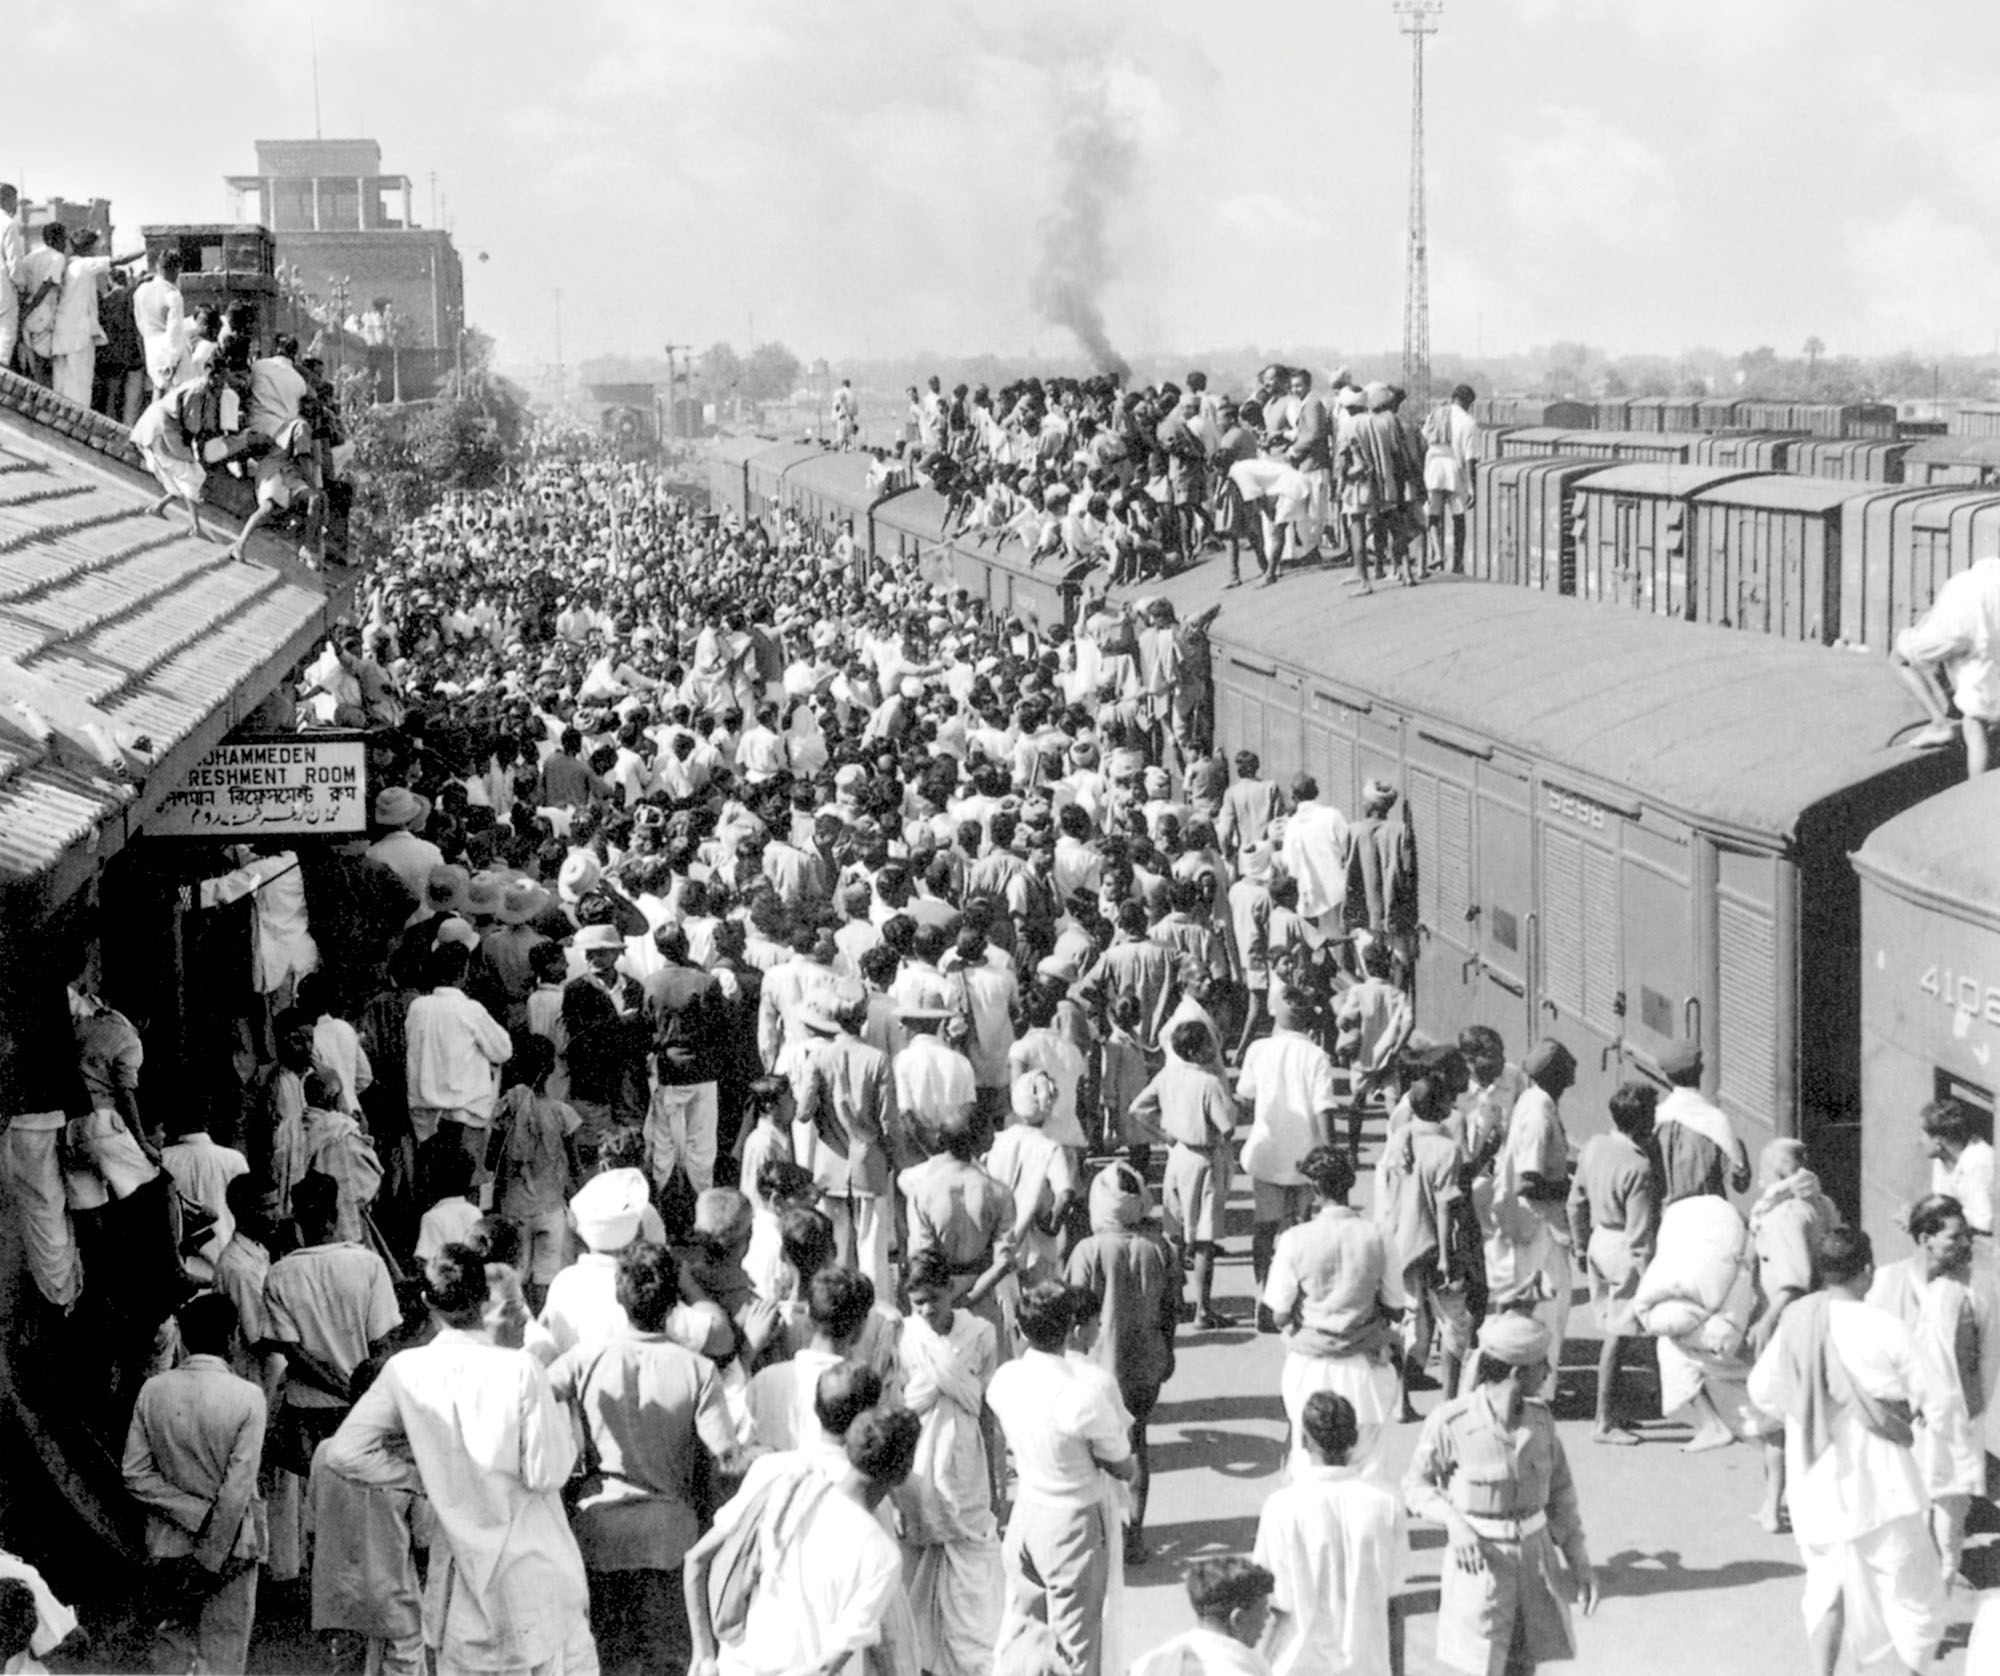 "A crowd gathers at Noakhali station to watch Gandhi arrive. Gandhi spent October 1946 in Noakhali – a district in Bengal, now in Bangladesh – in response to communal rioting. To keep the peace he later headed to Calcutta. While both Punjab and Bengal were partitioned, the latter saw little violence, some credit for which should go to Gandhi's appeal for peace. The British Viceroy of India called Gandhi a ""one-man boundary force"" for his role in pacifying Calcutta. Credit: Alamy"